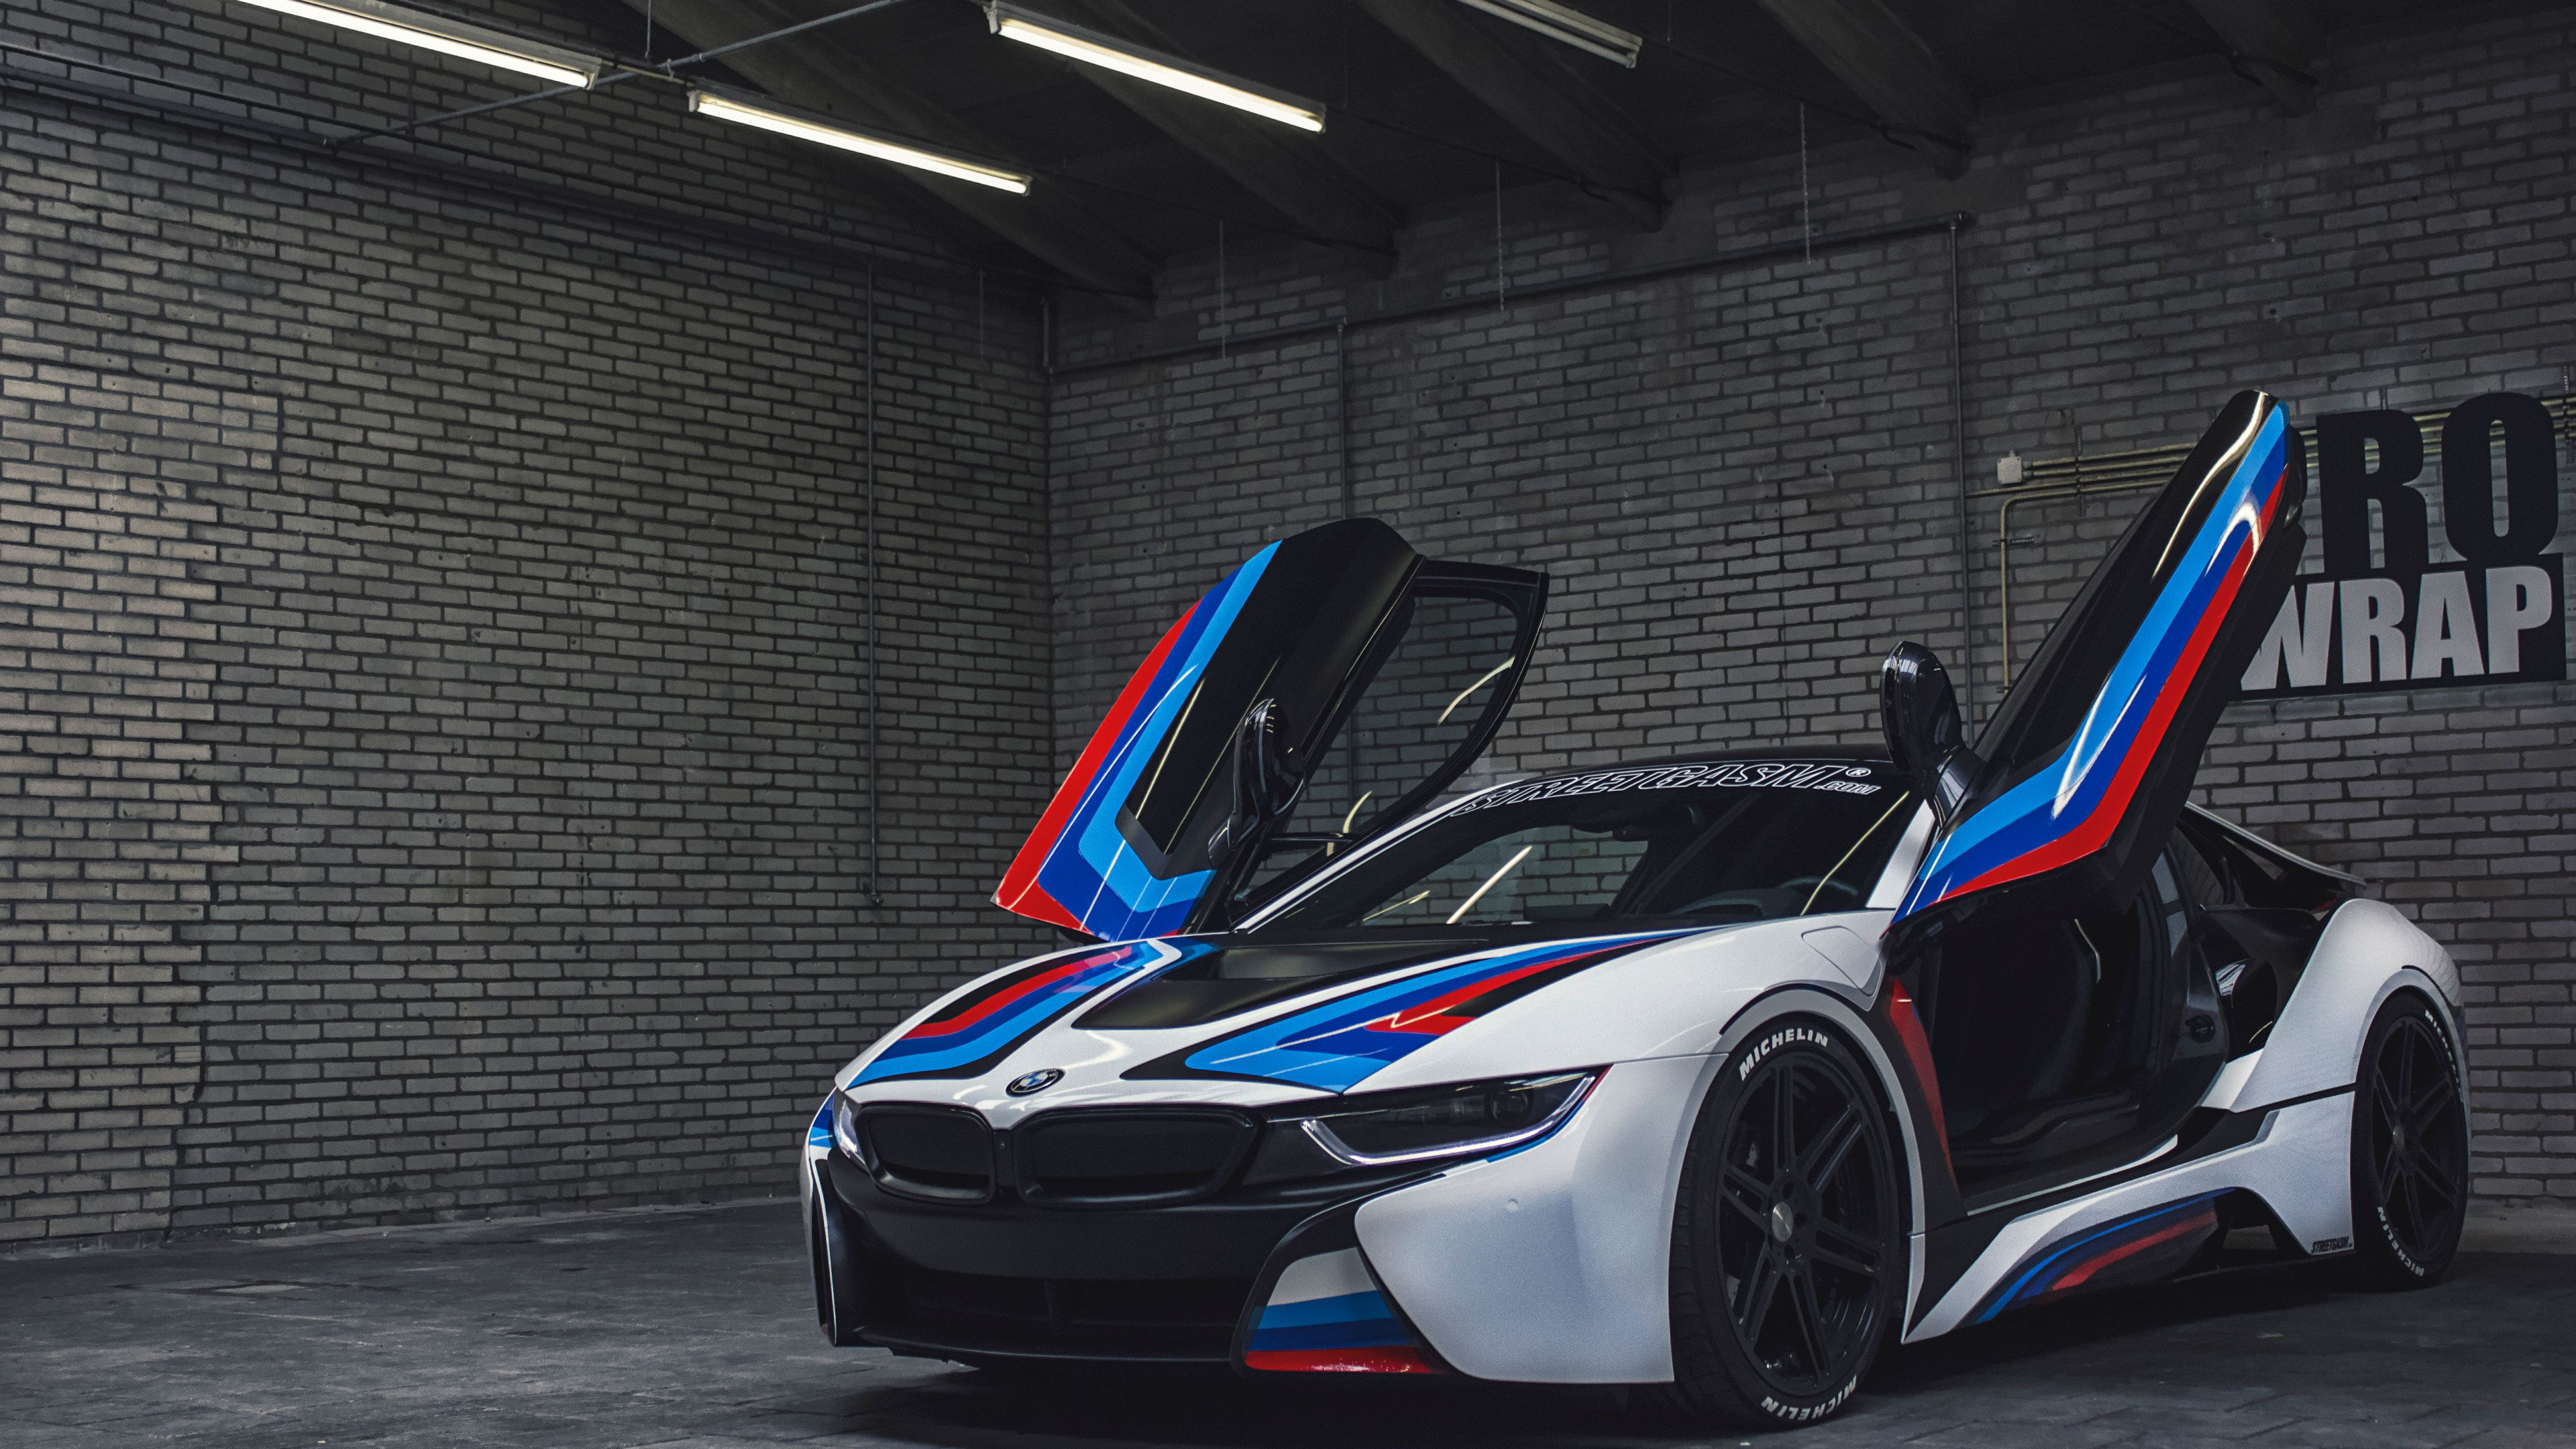 Bmw I8 2017 4k Hd Wallpapers Cars Wallpapers Bmw Wallpapers Bmw I8 Wallpapers 4k Wallpapers Bmw I8 Bmw Wallpapers German Cars